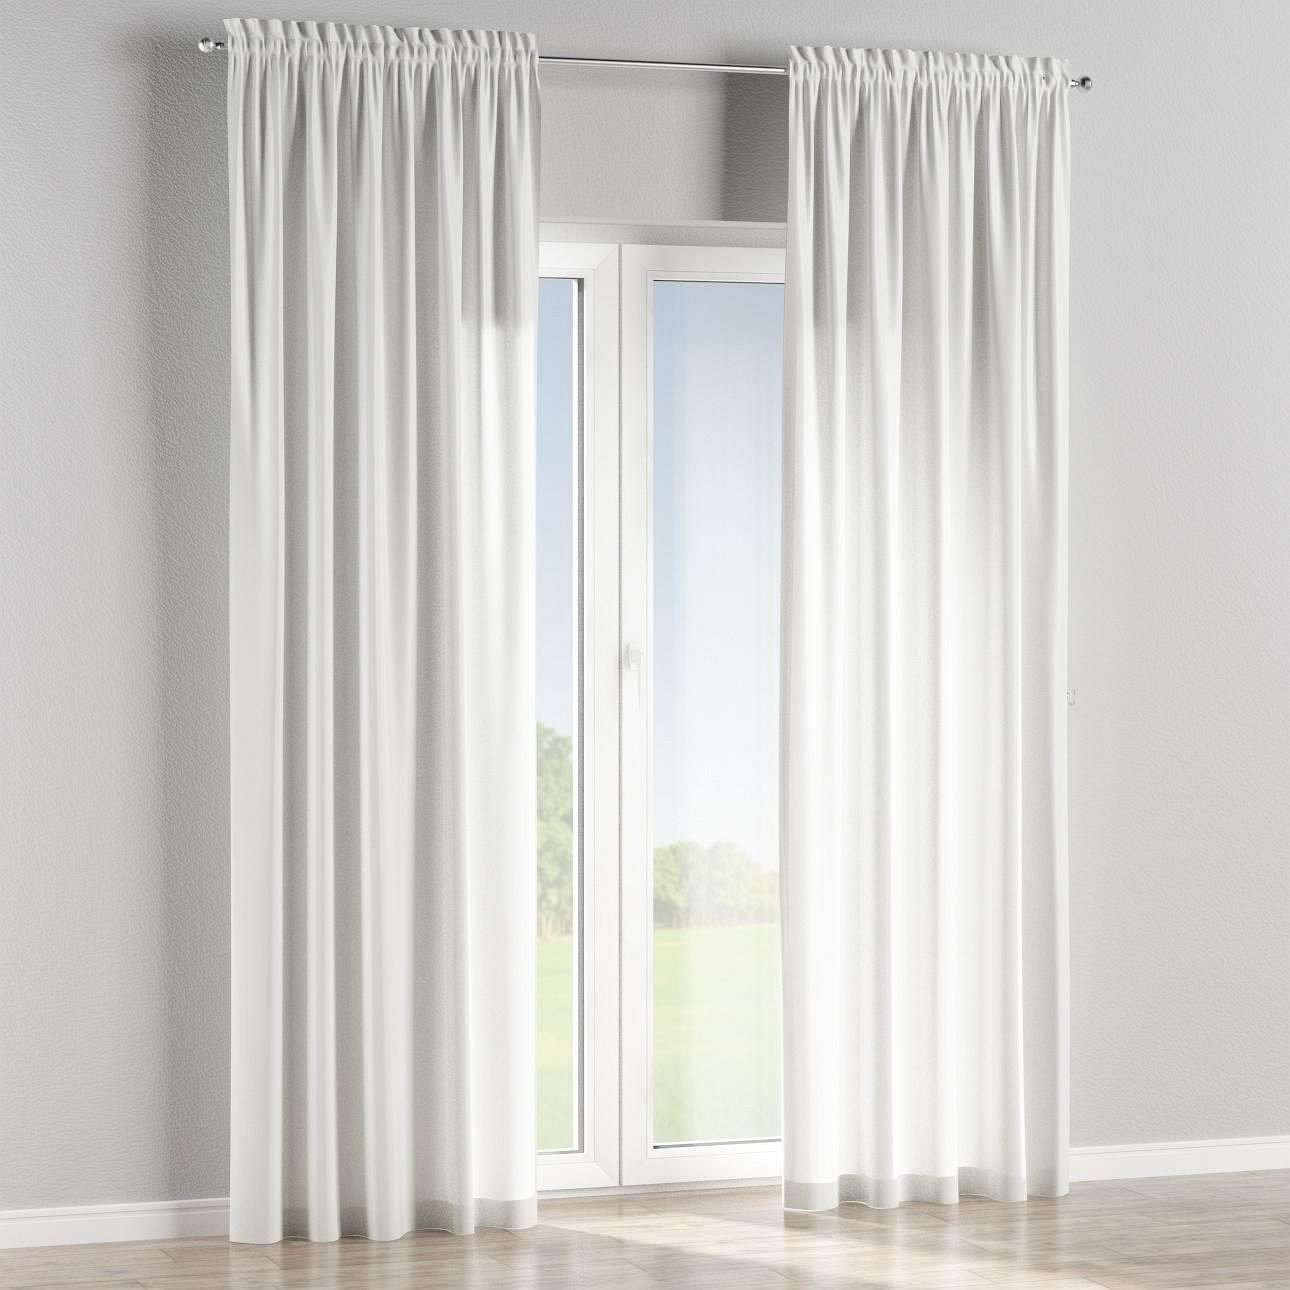 Slot and frill lined curtains in collection Flowers, fabric: 311-03